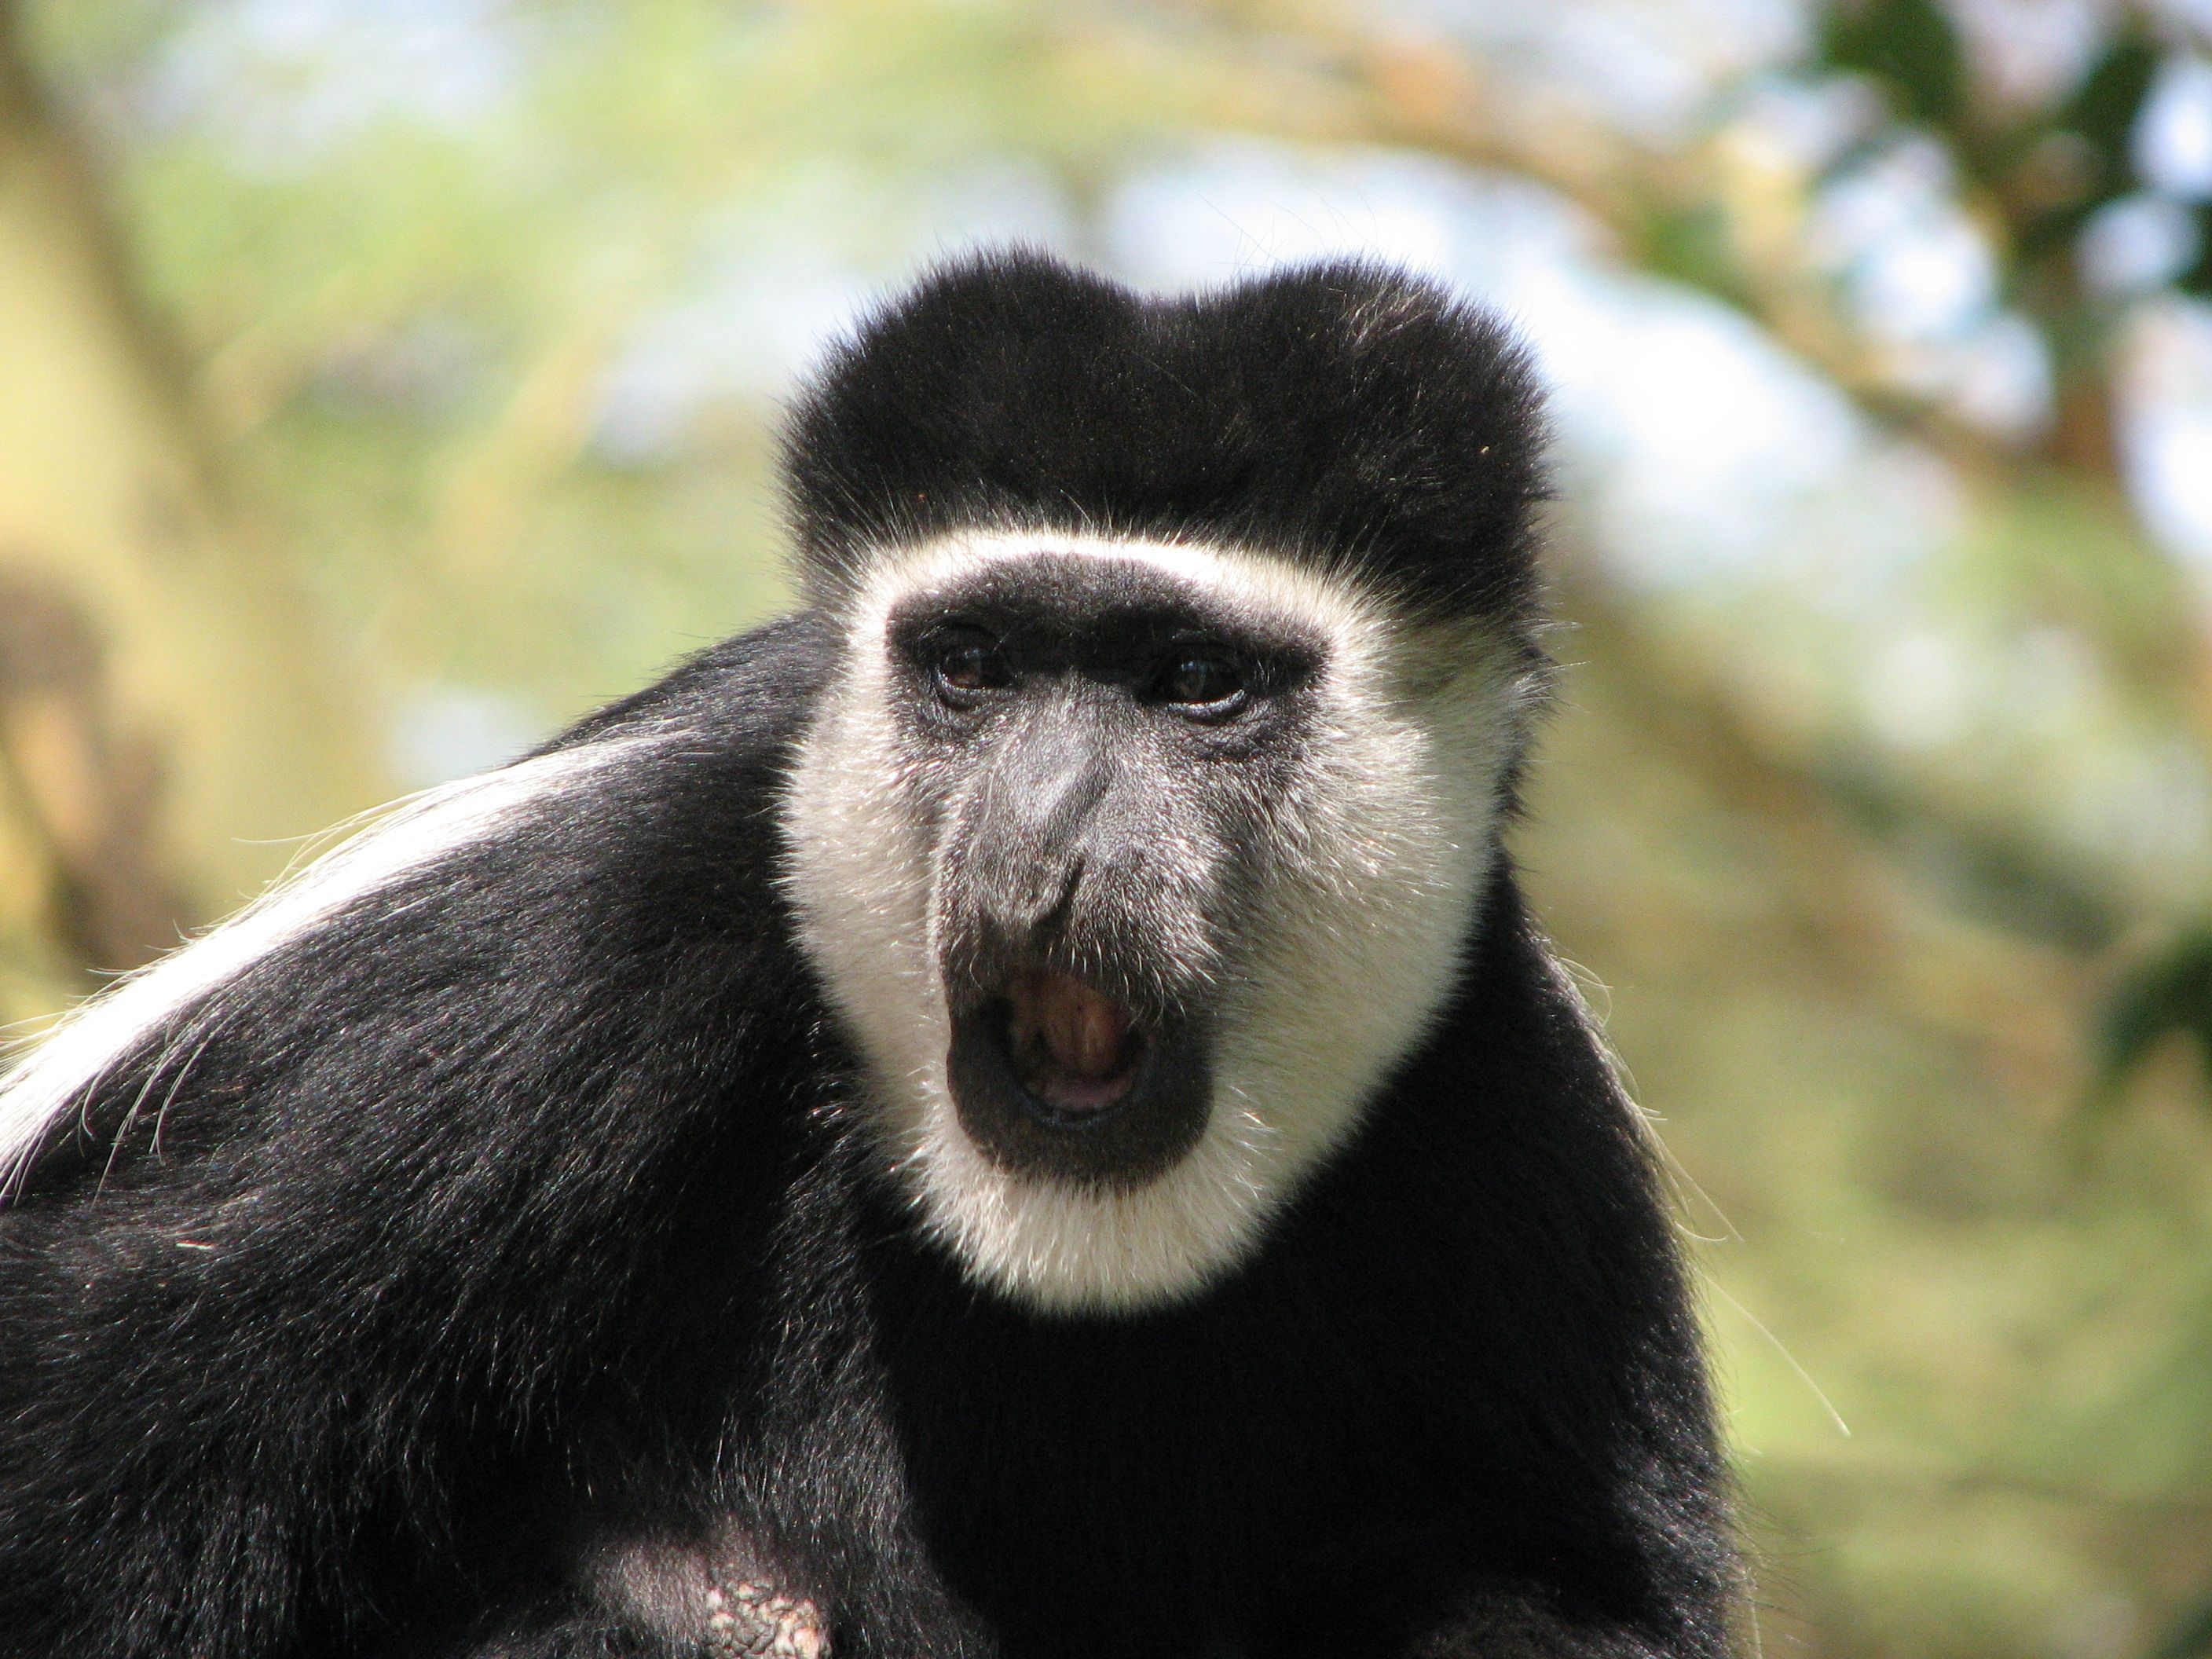 primates | Follow the links to the left to learn more about the primates we ...